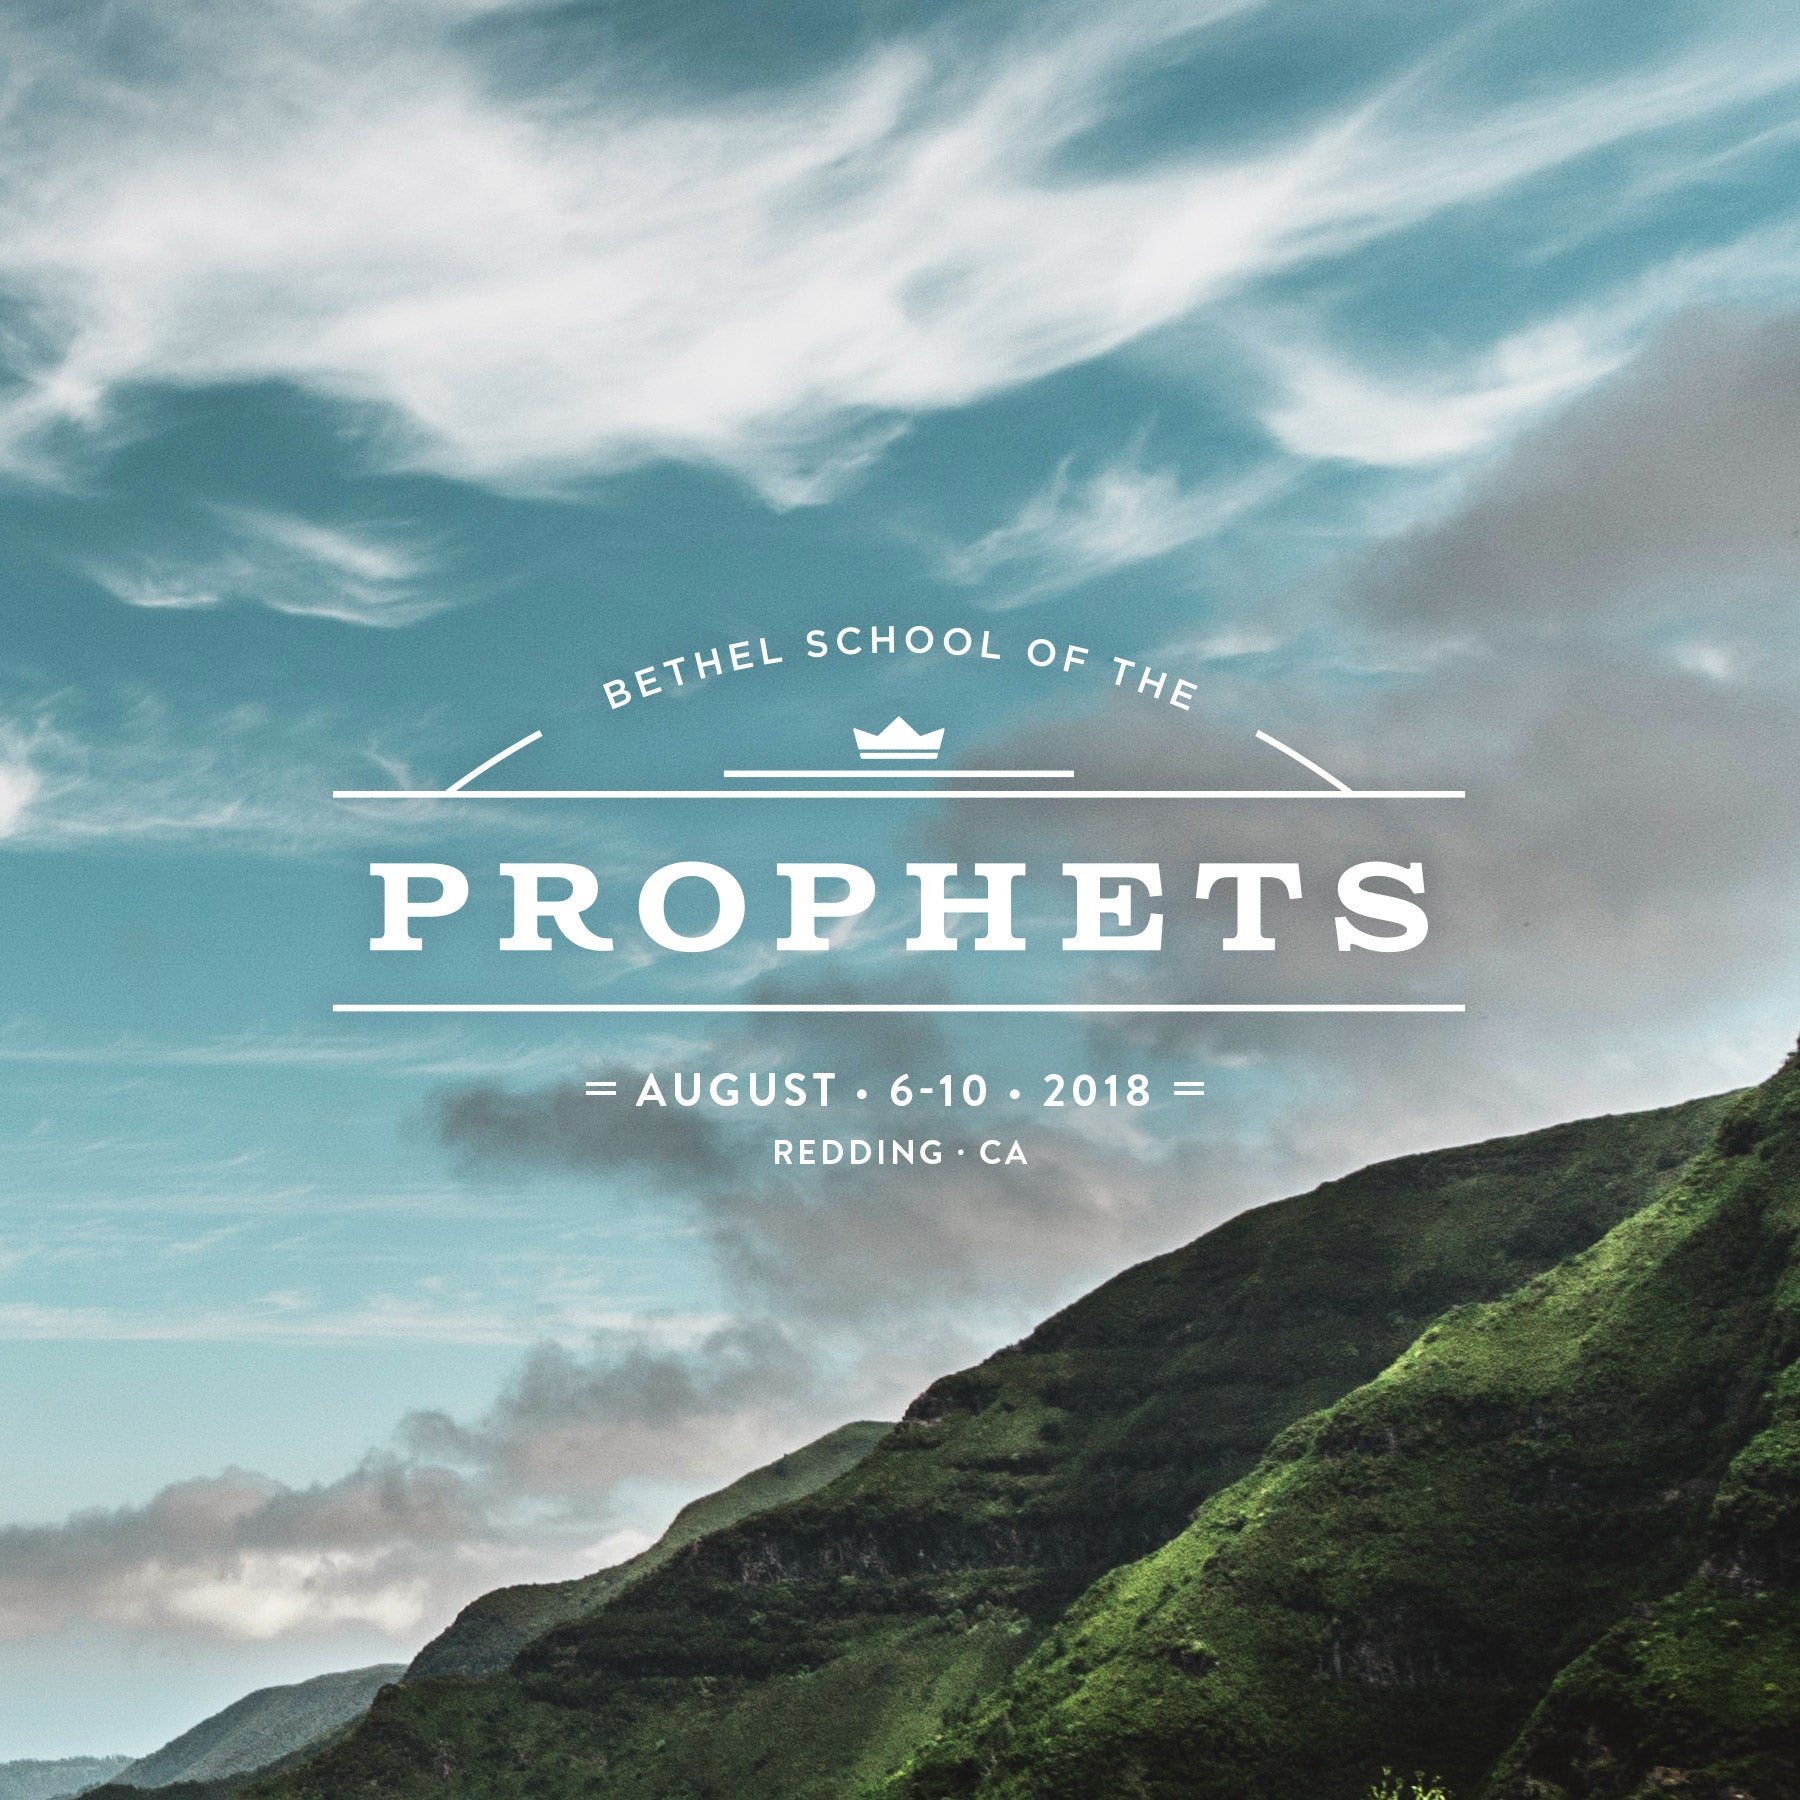 School of the Prophets August 2018